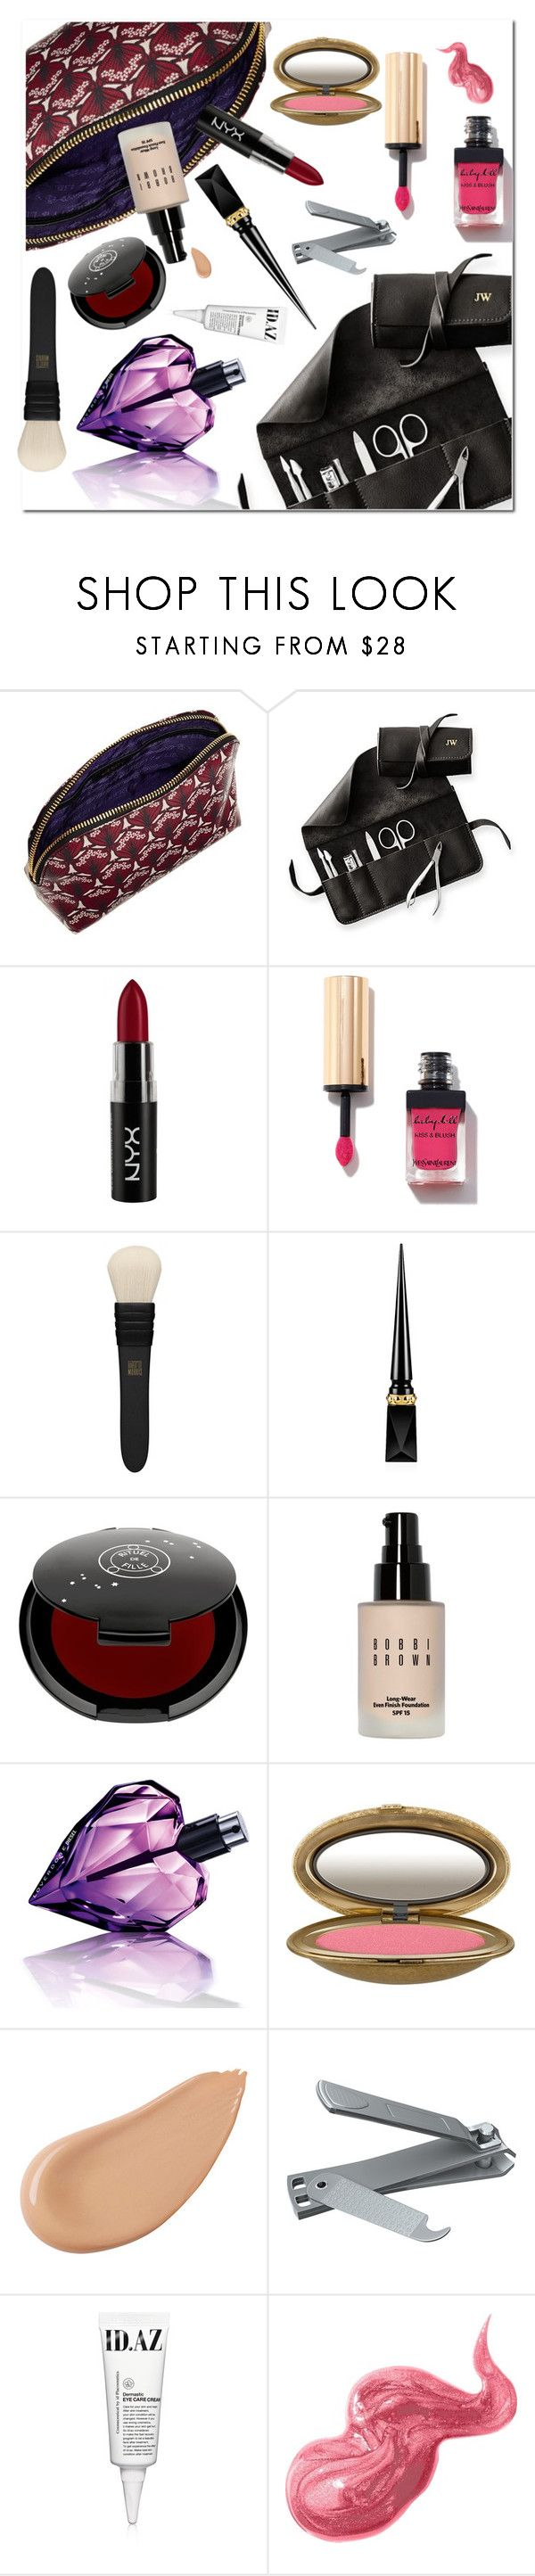 """""""#makeupbag"""" by hellodollface ❤ liked on Polyvore featuring beauty, Liberty, Mark & Graham, NYX, MAC Cosmetics, Christian Louboutin, Rituel de Fille, Bobbi Brown Cosmetics, Diesel and Shiseido"""